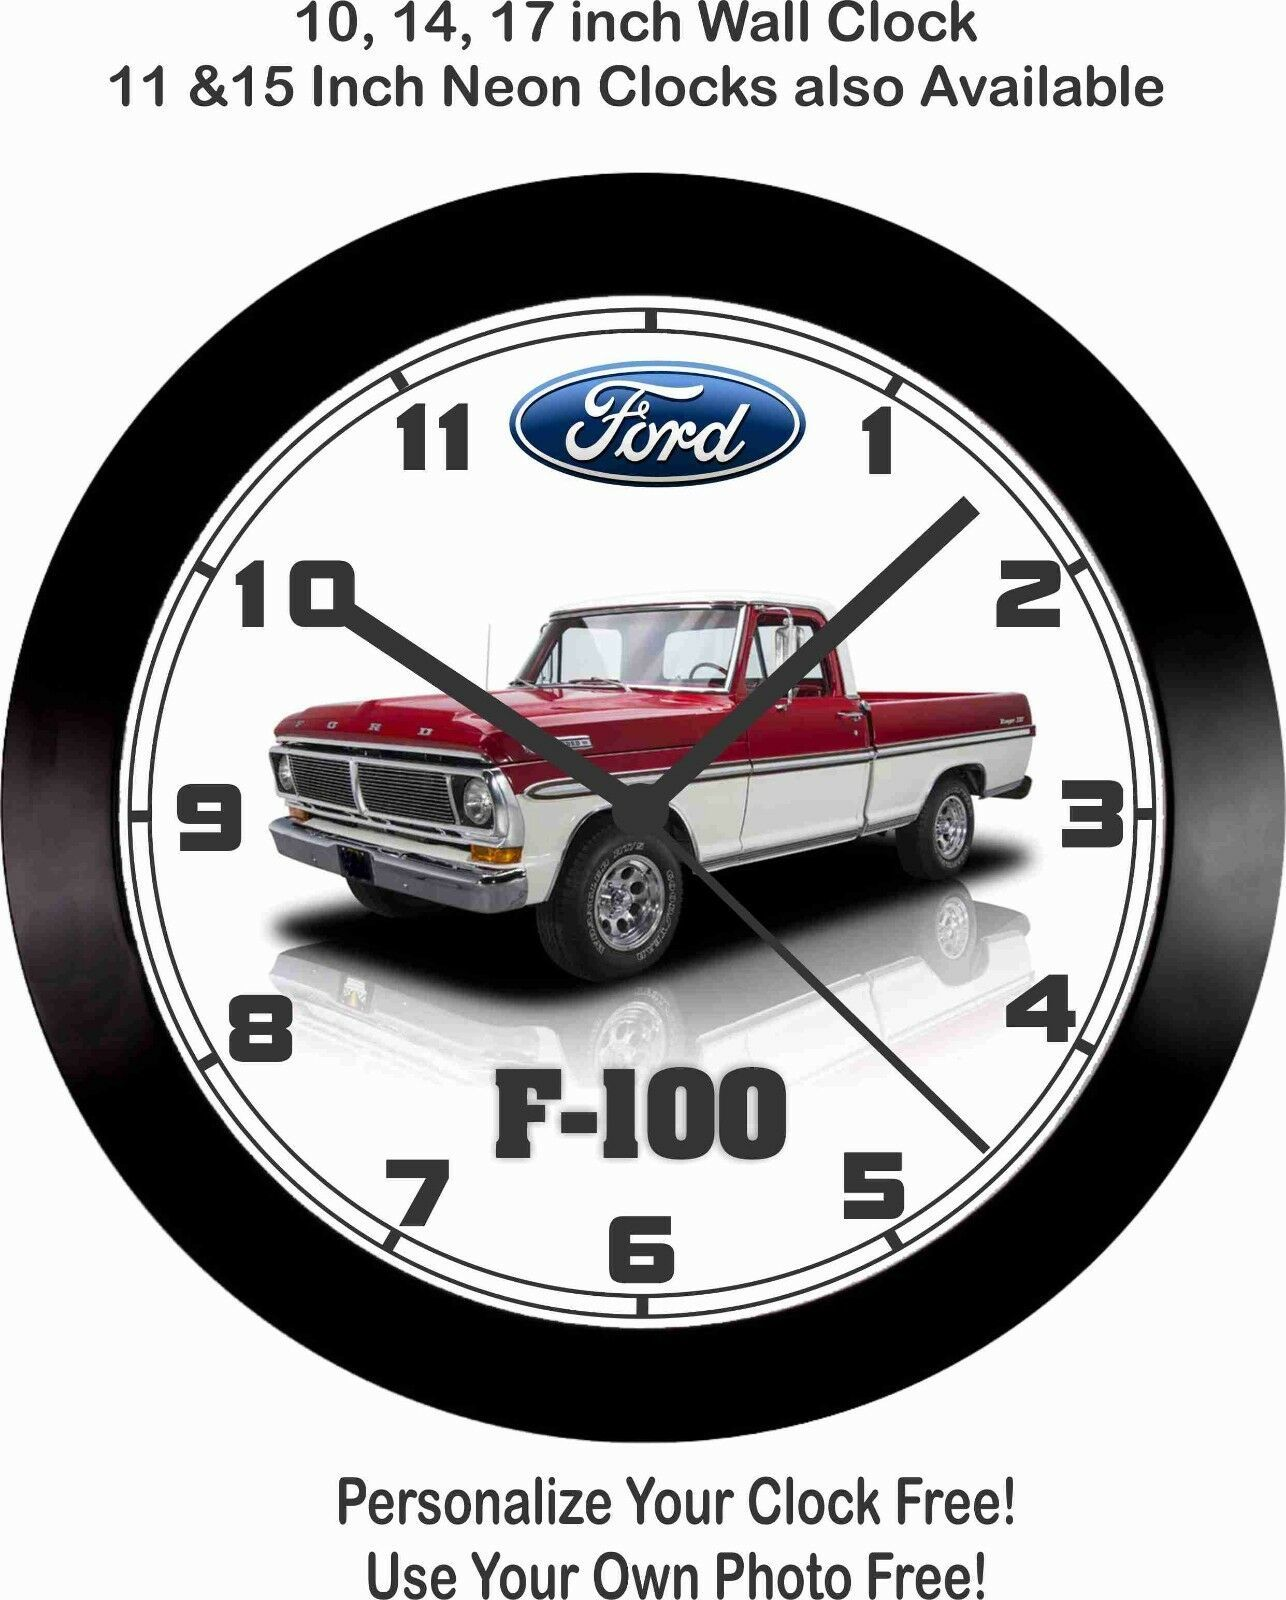 Primary image for 1972 FORD F-100 PICKUP TRUCK WALL 17 INCH CLOCK-FREE USA SHIP!, F150, Chevrolet,